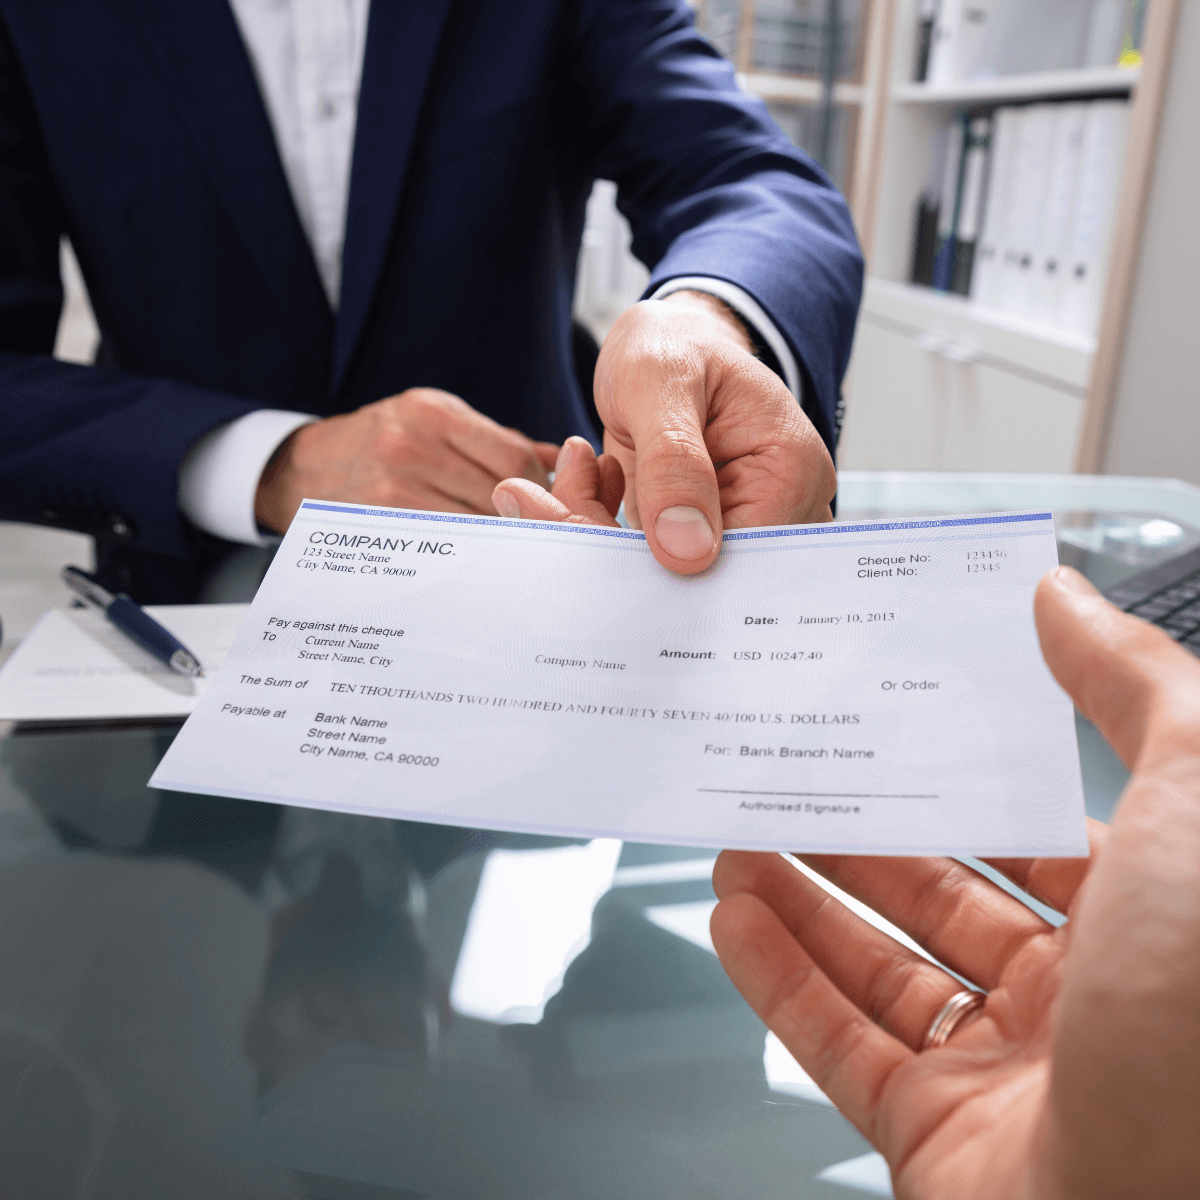 Do You Have Any Unclaimed CRA Cheques?